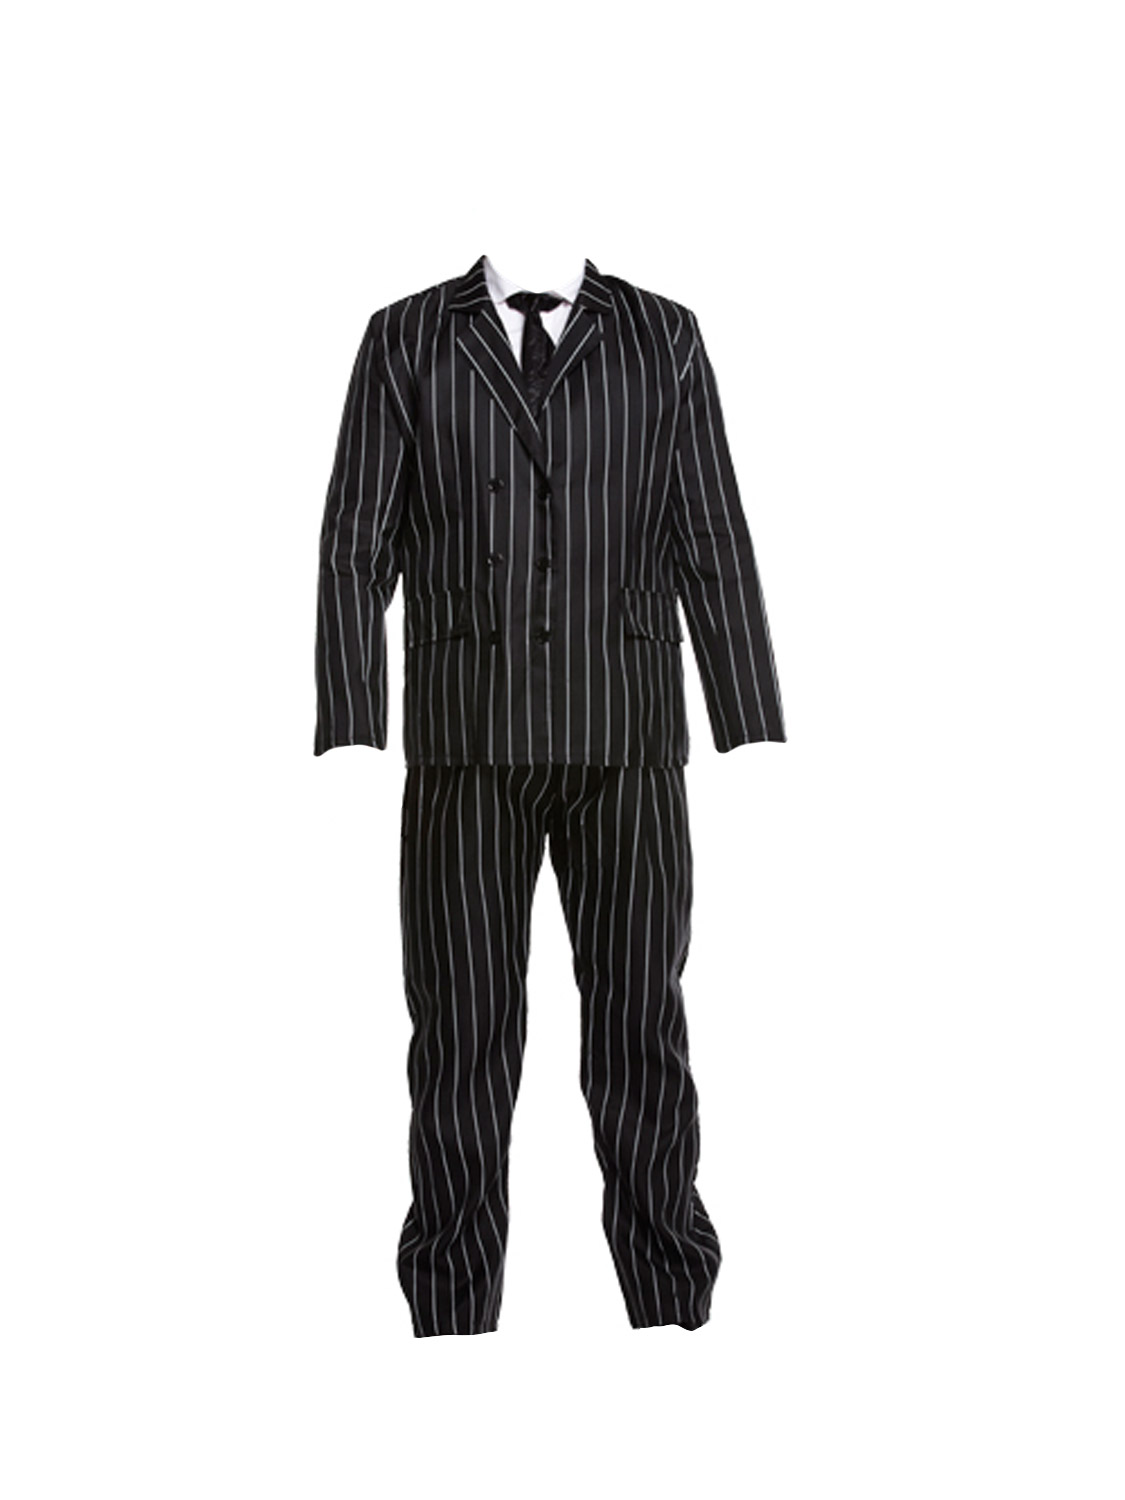 Gangster costume mens 1920s godfather mafia pinstripe suit adults